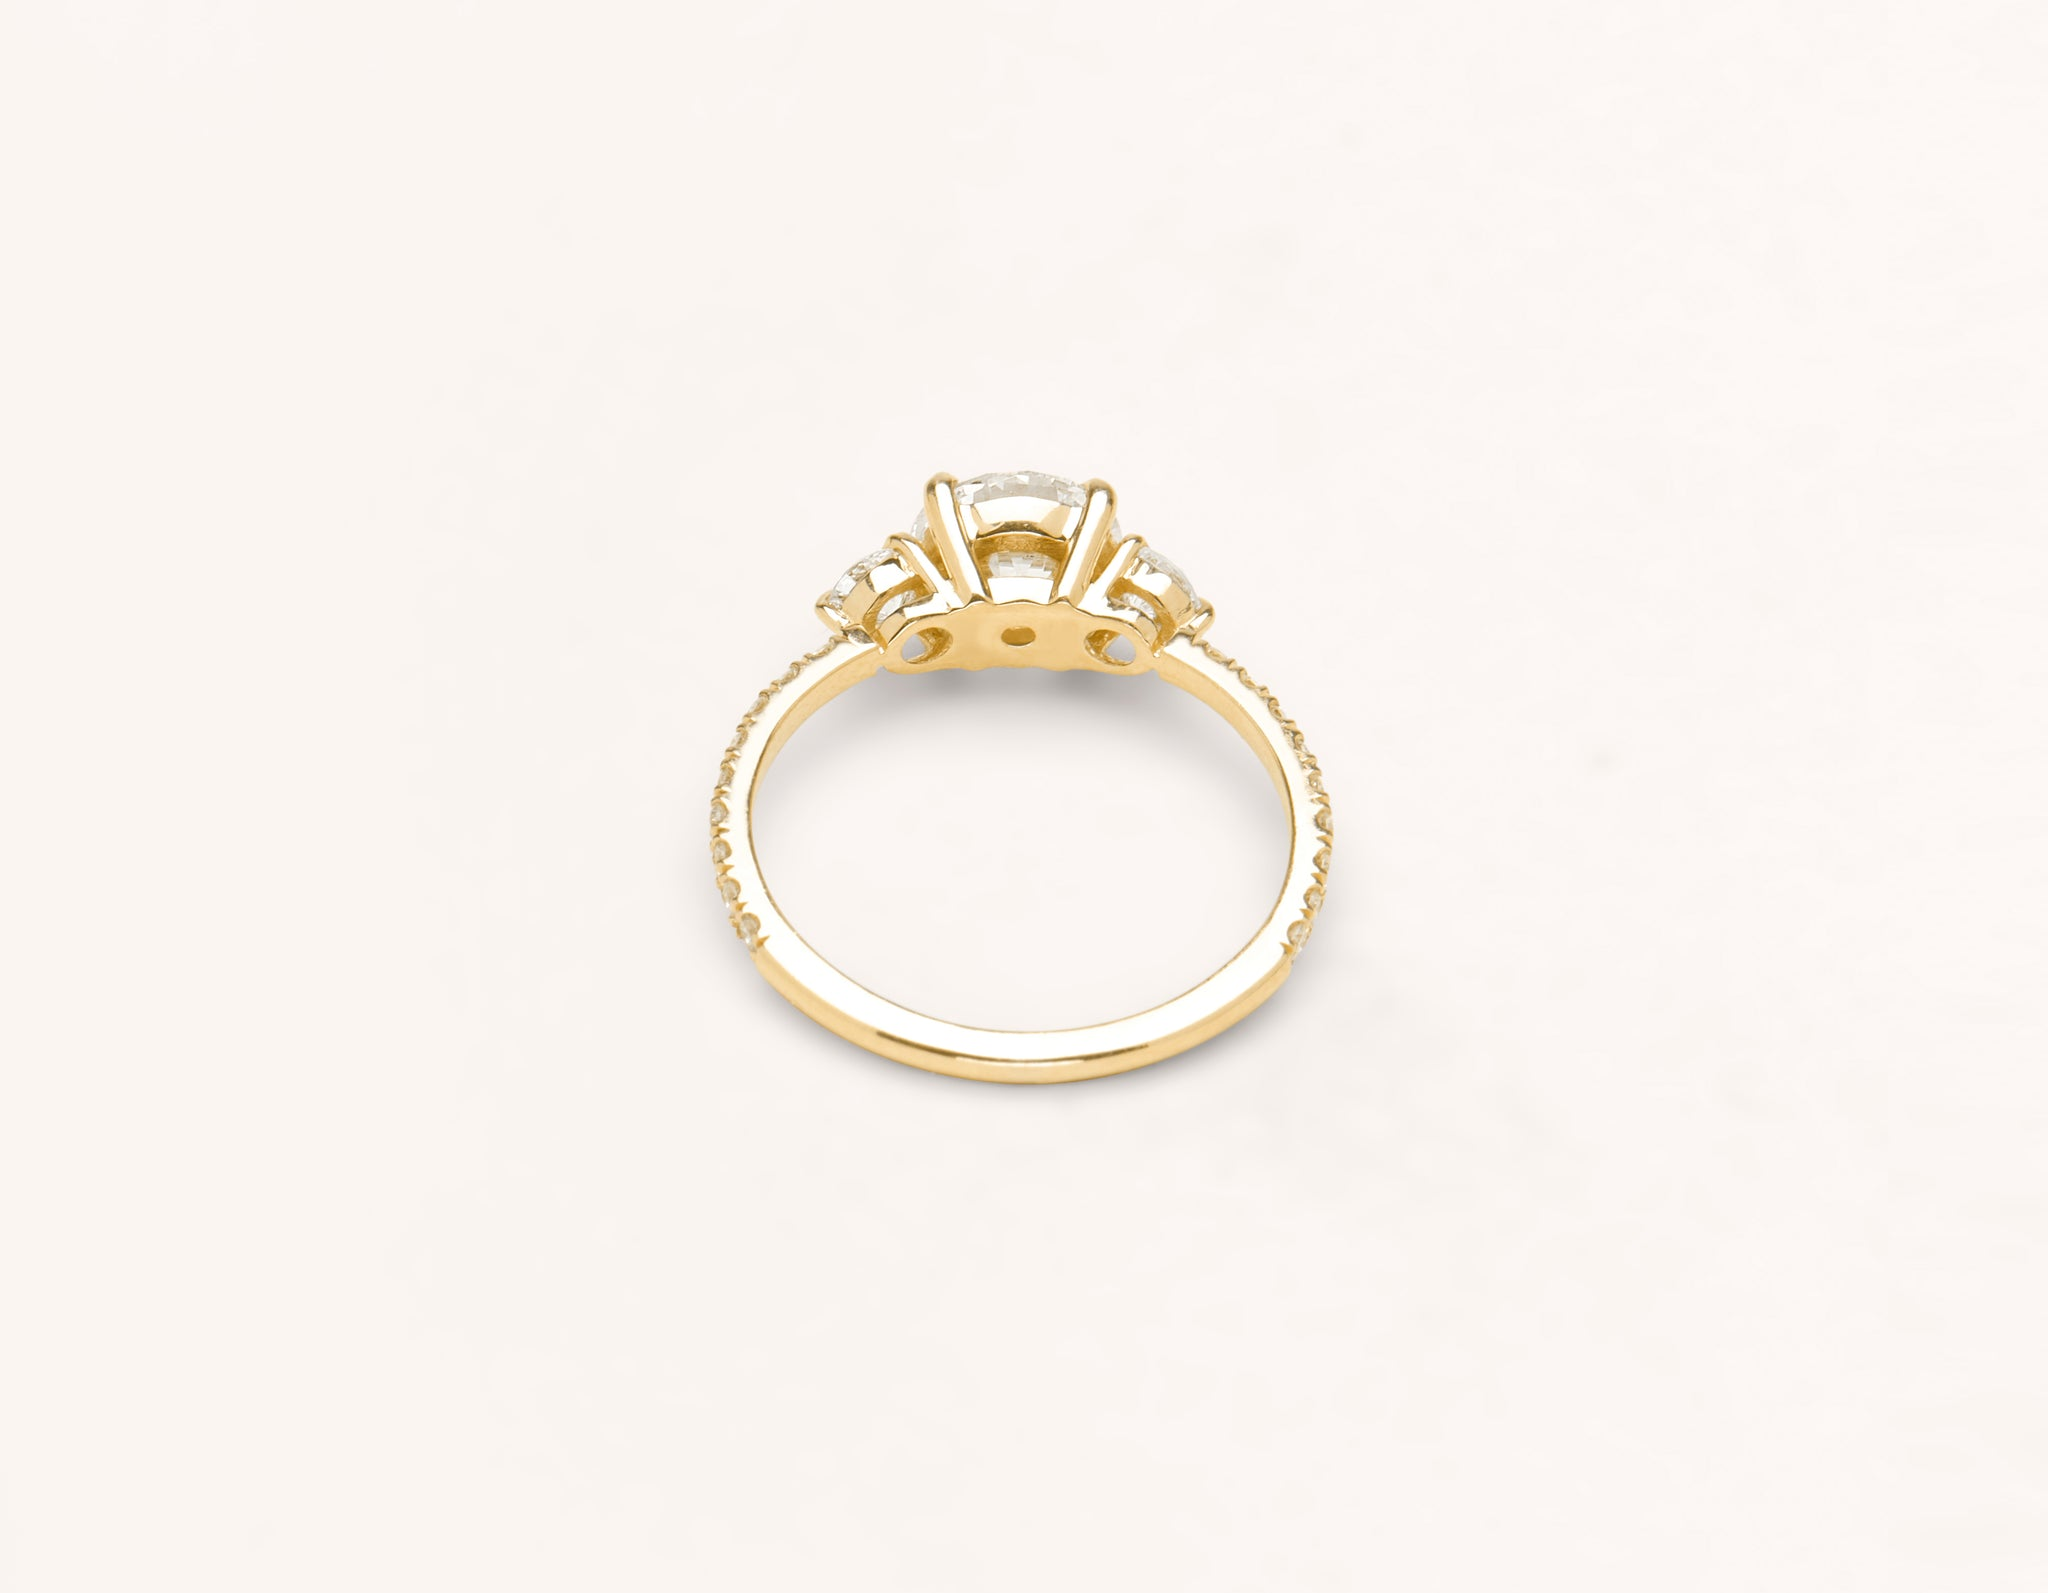 Vrai & Oro 18k solid yellow gold Diamond engagement ring The Three Stone pave simple classic band